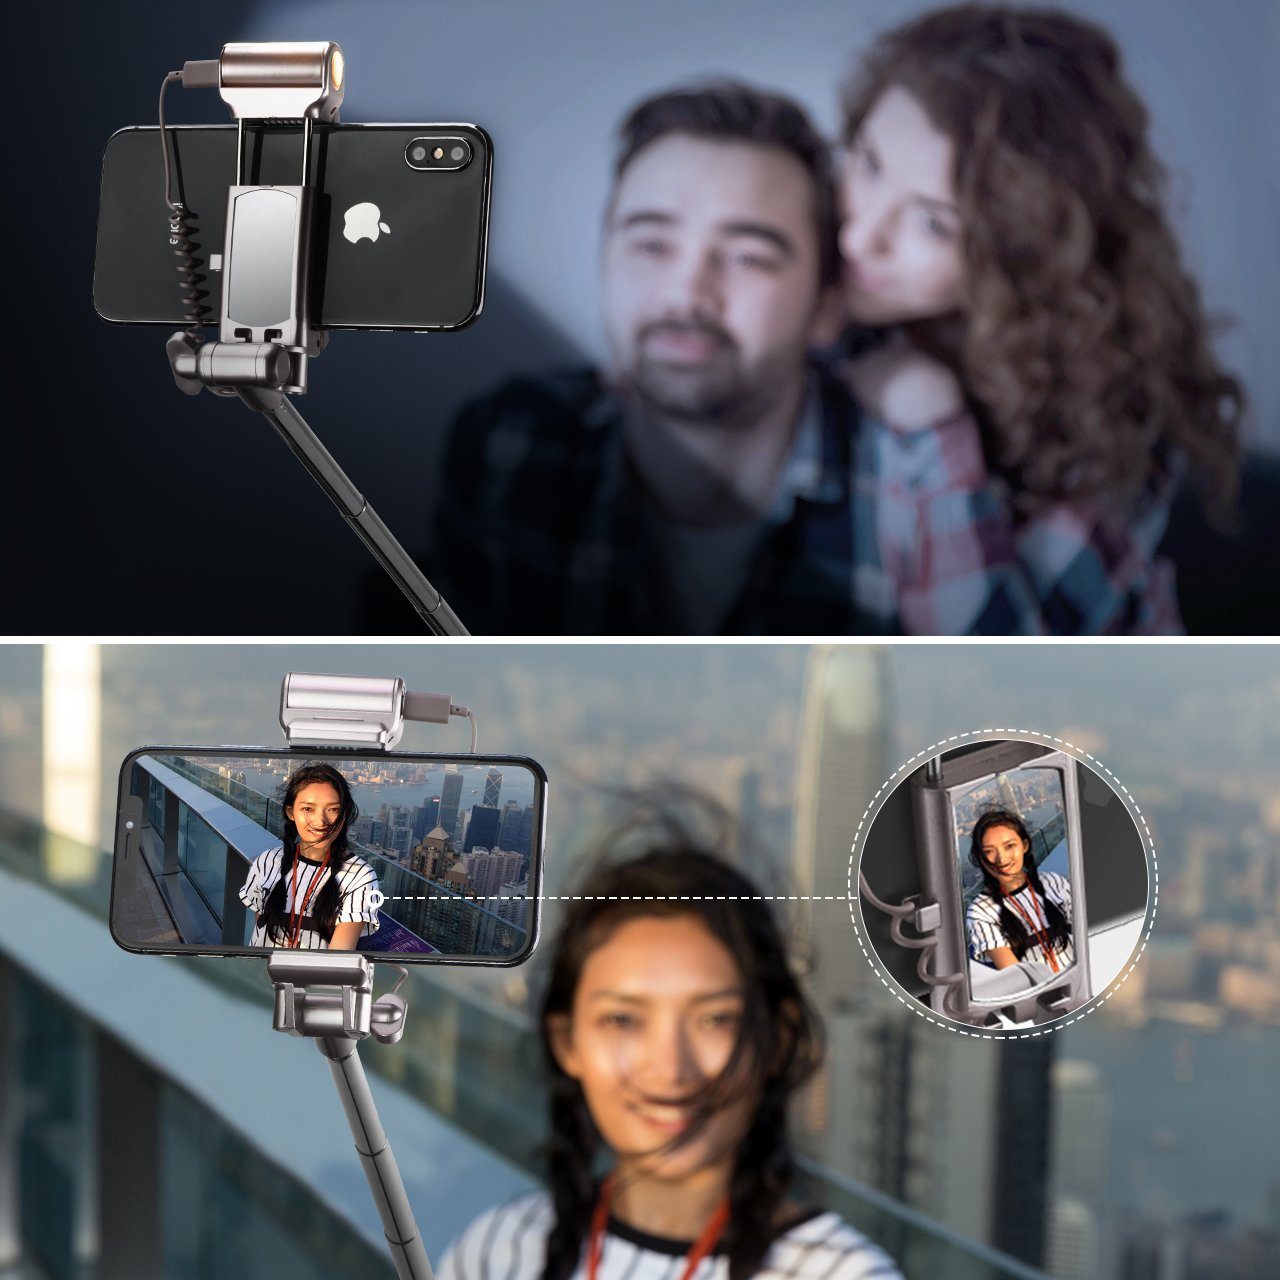 Mpow Selfie Stick Bluetooth, with 360 Degree Led Fill Light and Rear Mirror, Adjustable Head & a Carrying Bag, Fits for iPhone X/8/8P/7/7P/6s/6P/5S/SE, Galaxy S6/S7/S8/A7, Huawei and More by Mpow (Image #6)